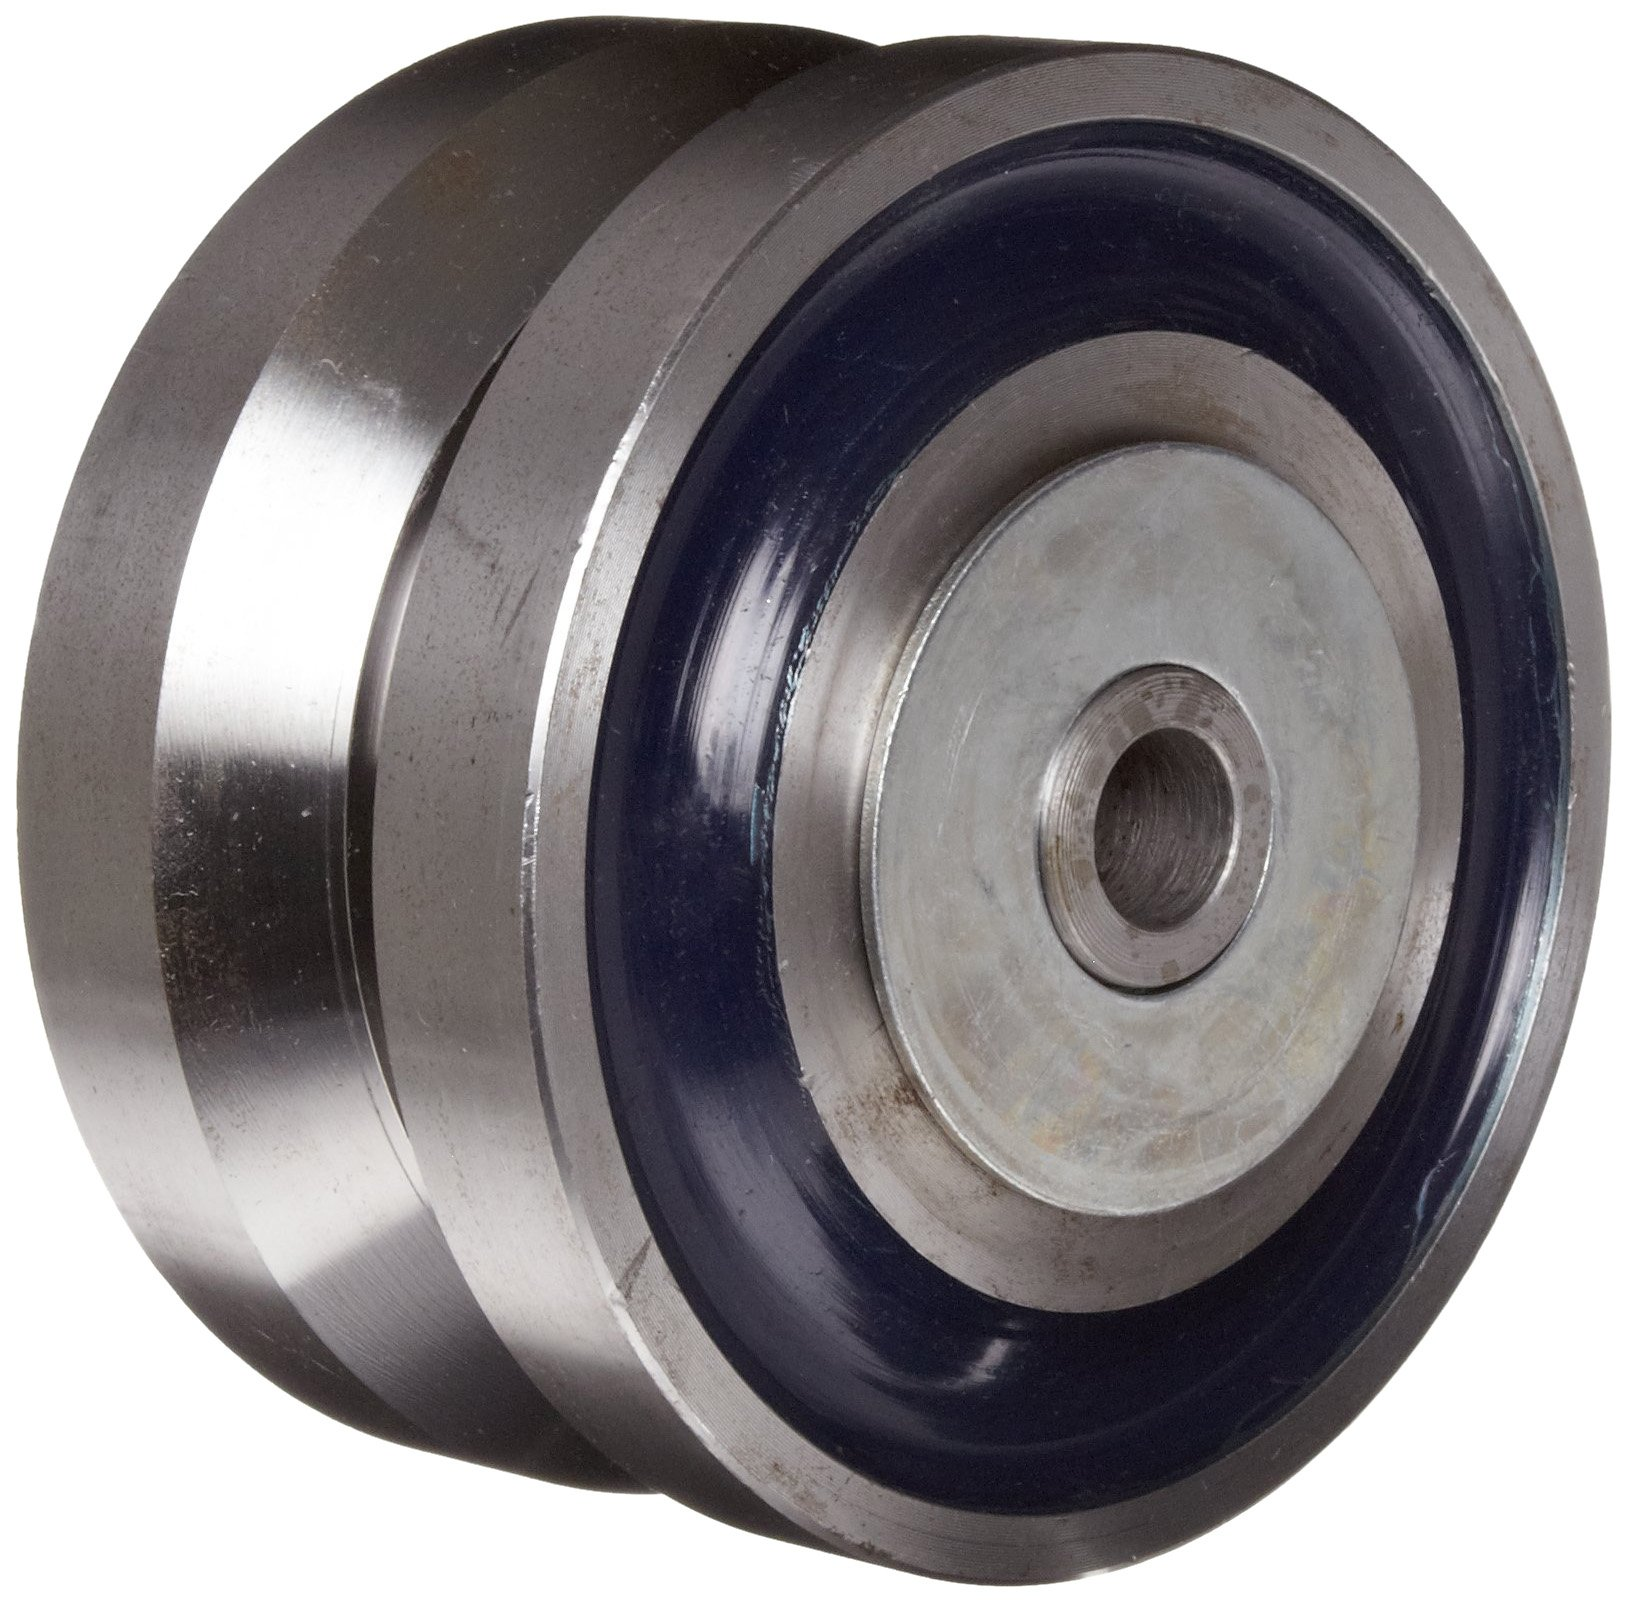 RWM Casters VFR-0630-12 6'' Diameter X 3'' Width Forged Steel V-Groove Wheel with Straight Roller Bearing, 7000 lbs Capacity